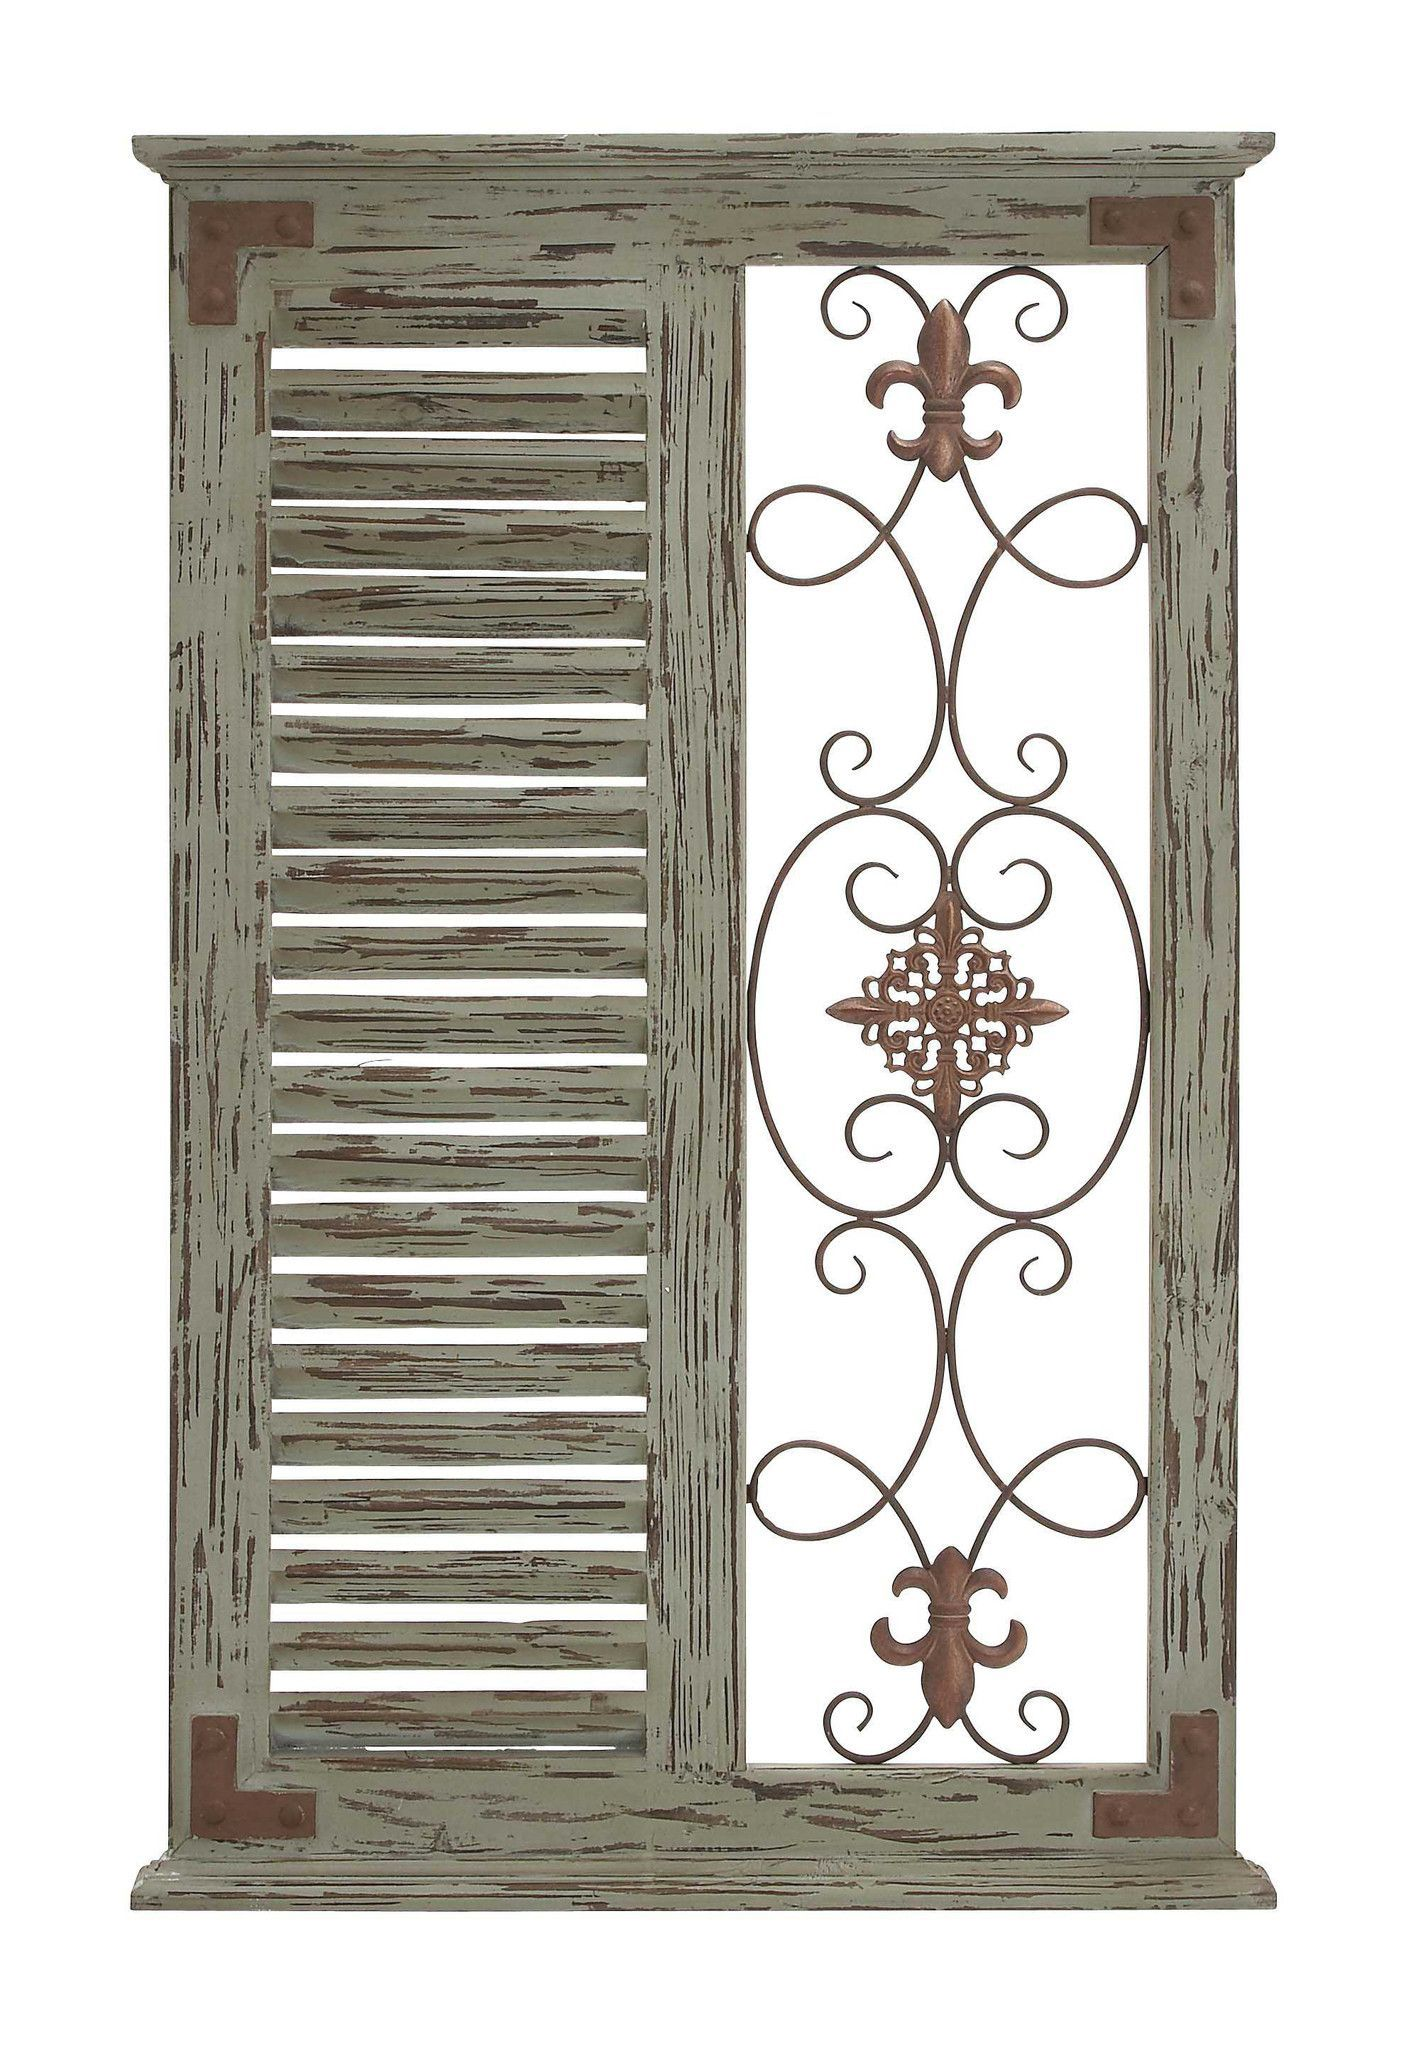 Classic pine wood metal wall panel with parallel slats of wood